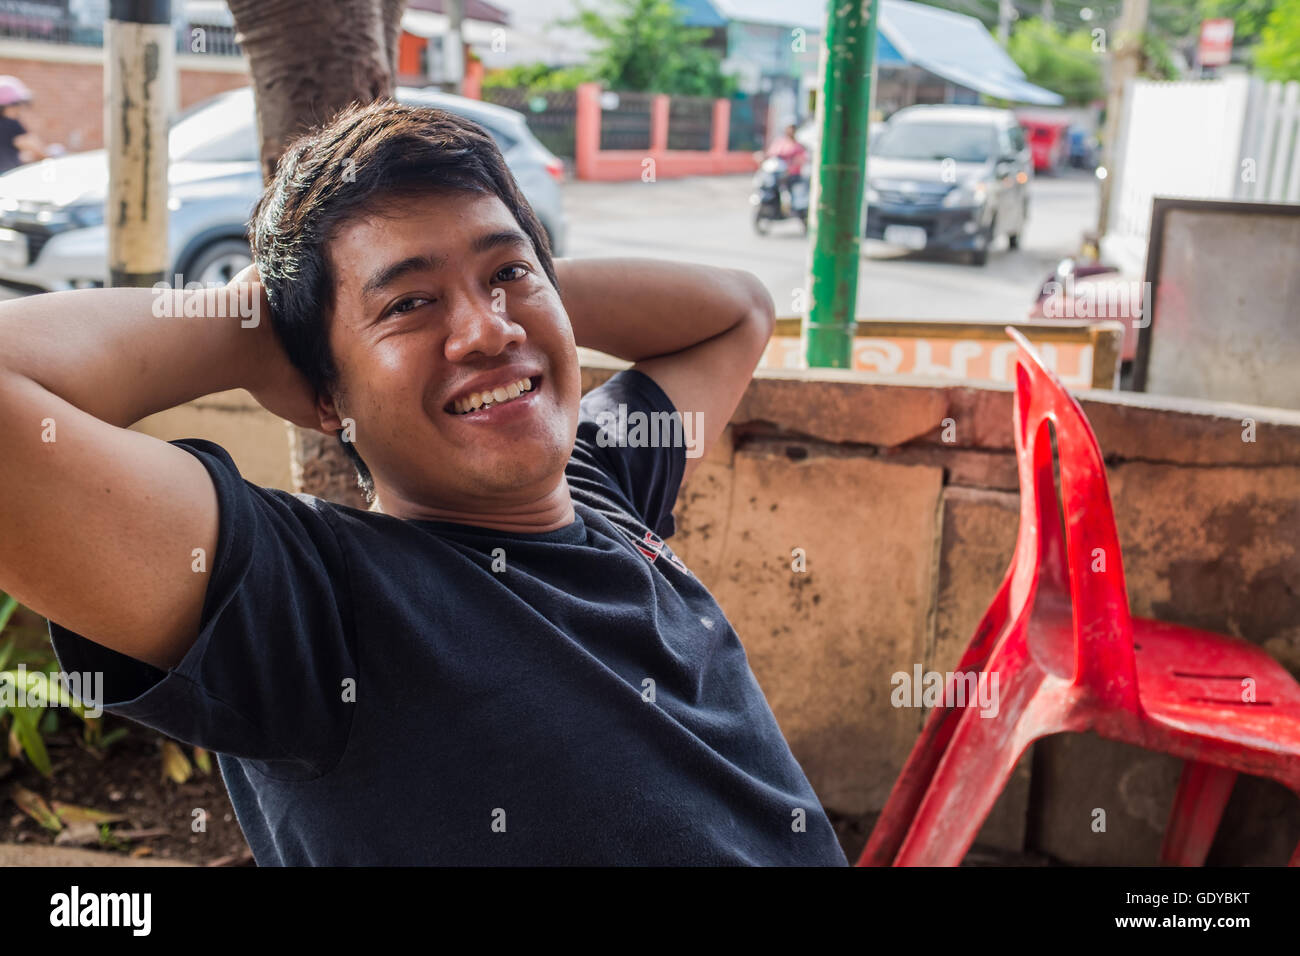 Local Thai man leaning back on chair with hands supporting head smiling,Chiang Mai,Thailand - Stock Image